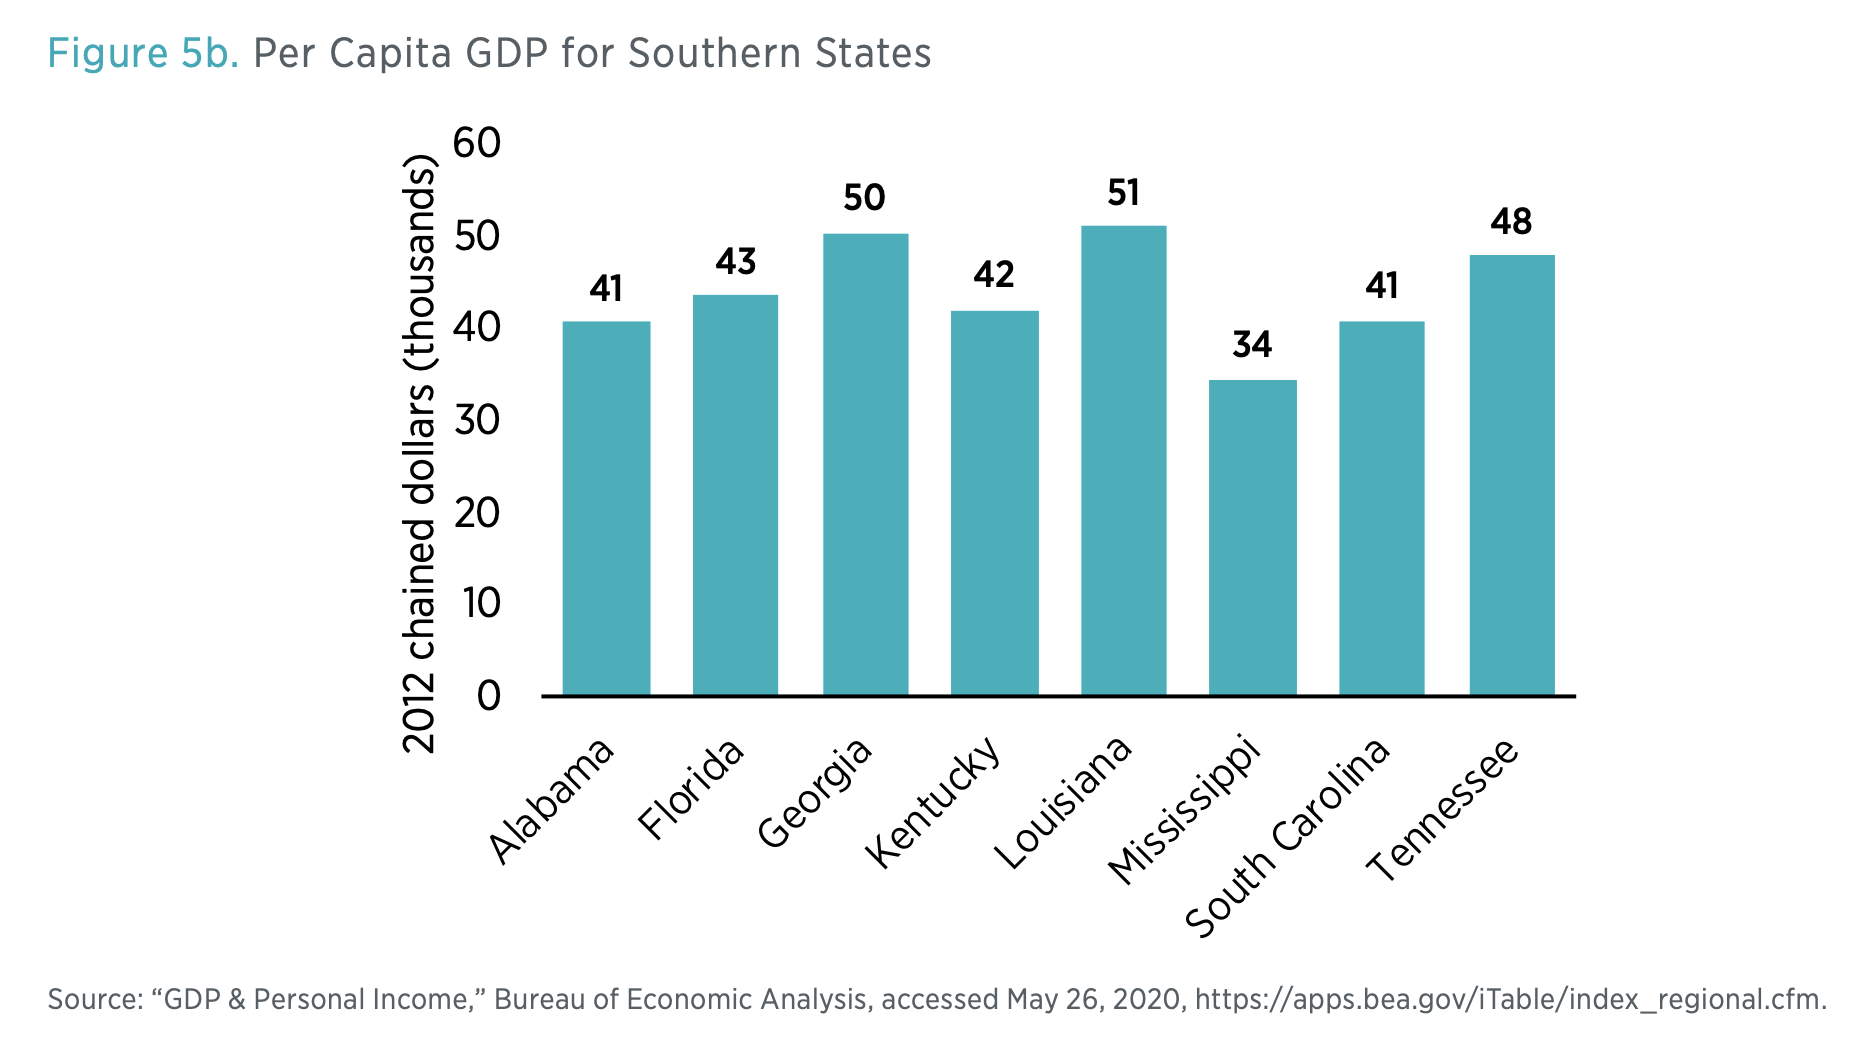 Figure 5b. Per Capita GDP for Southern States